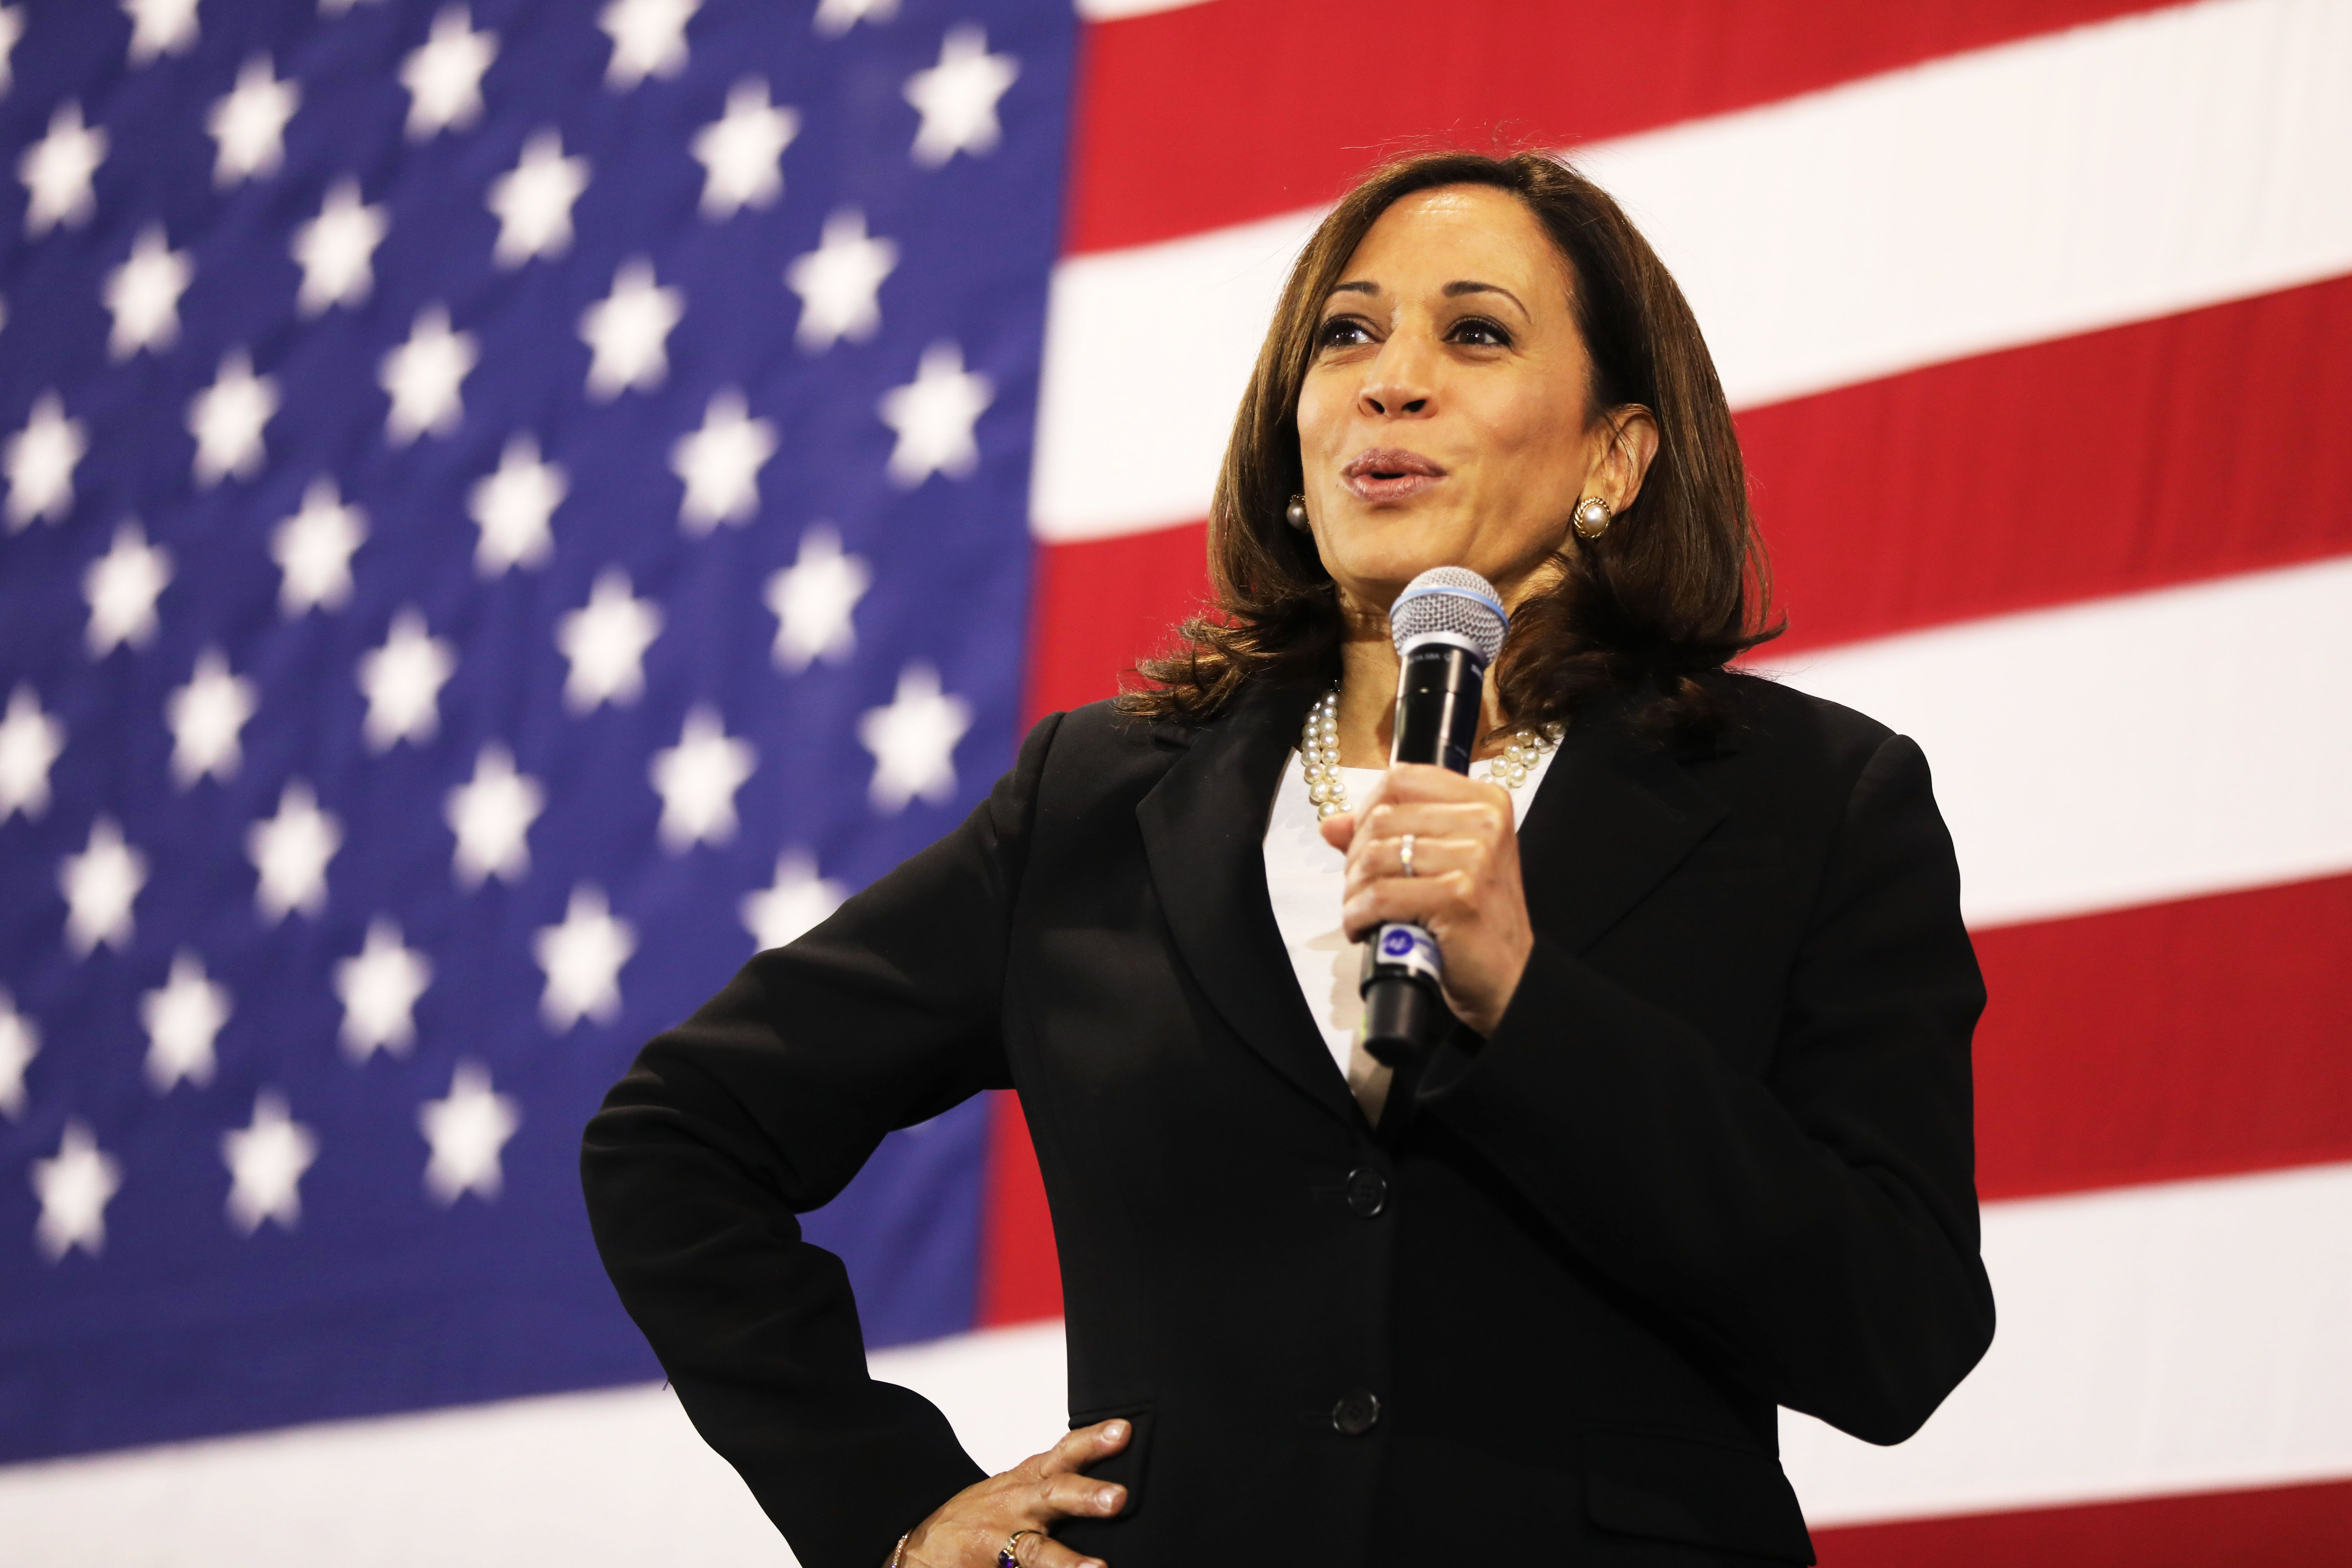 'Today I'm Feeling Seen': Black and South Asian Women Reflect on Kamala Harris Becoming Vice President